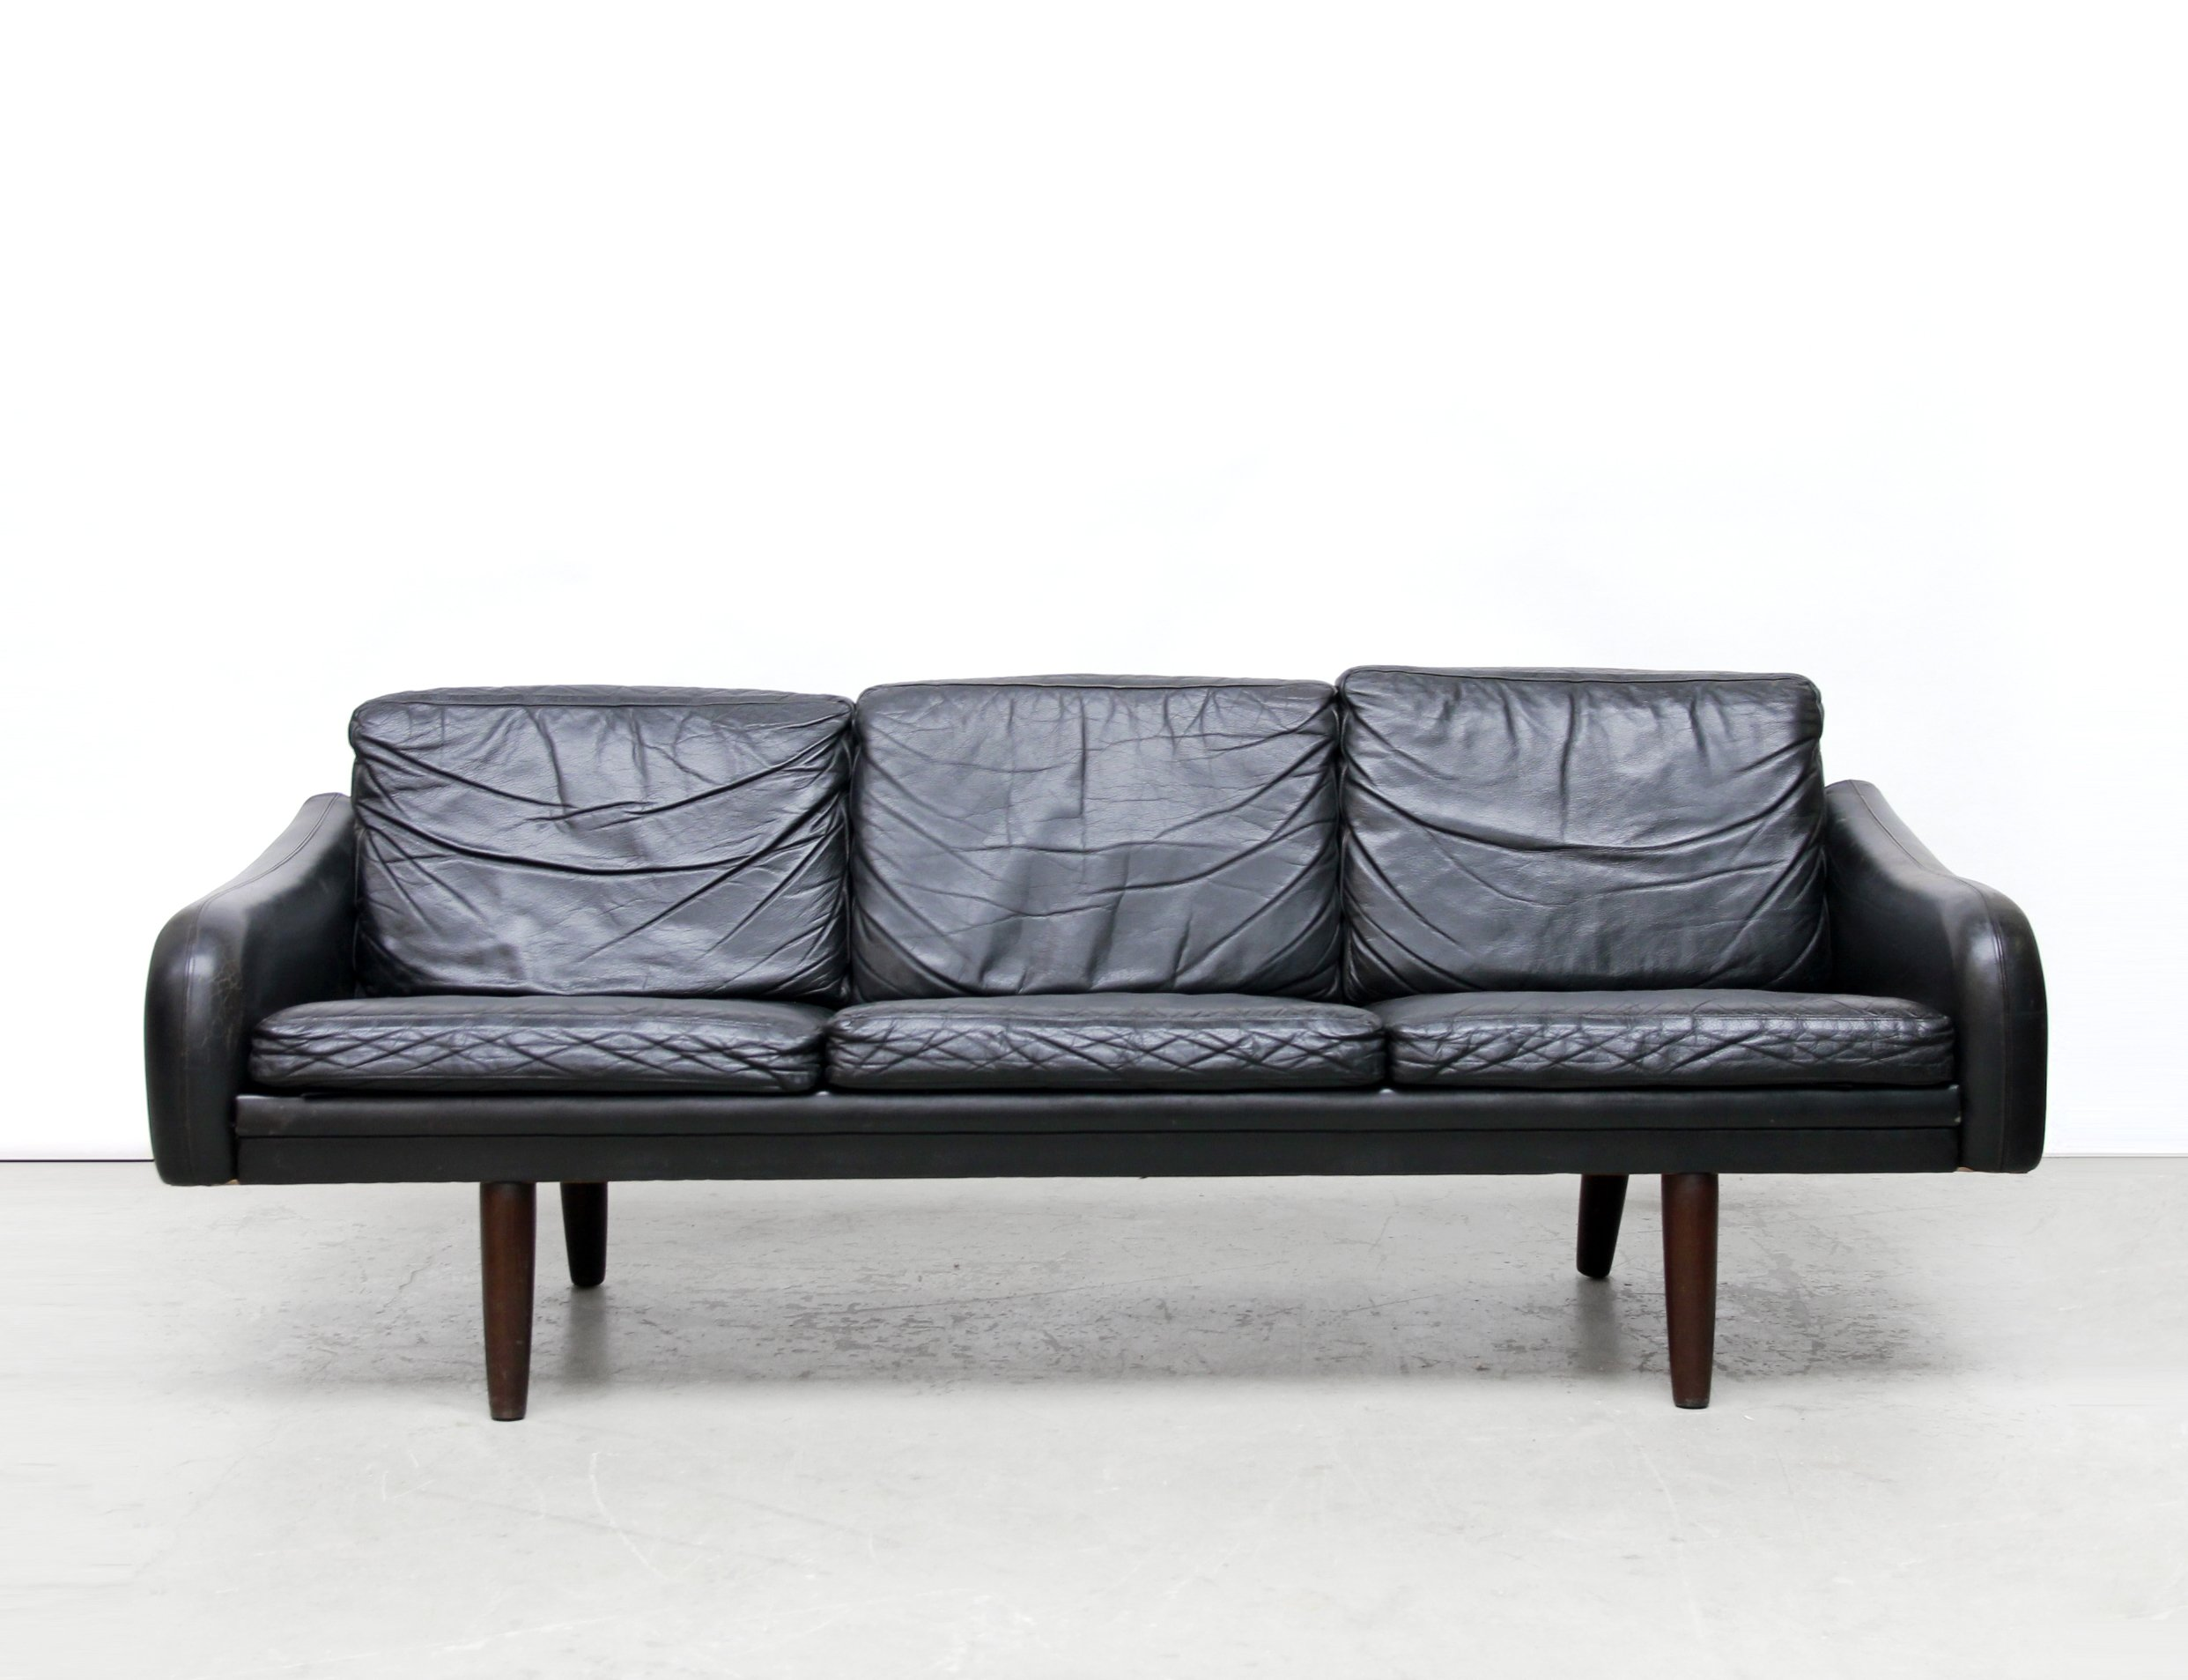 Sofa Danish Design : danish design sofas sofa design scandinavian reviews sofas thesofa ~ Eleganceandgraceweddings.com Haus und Dekorationen